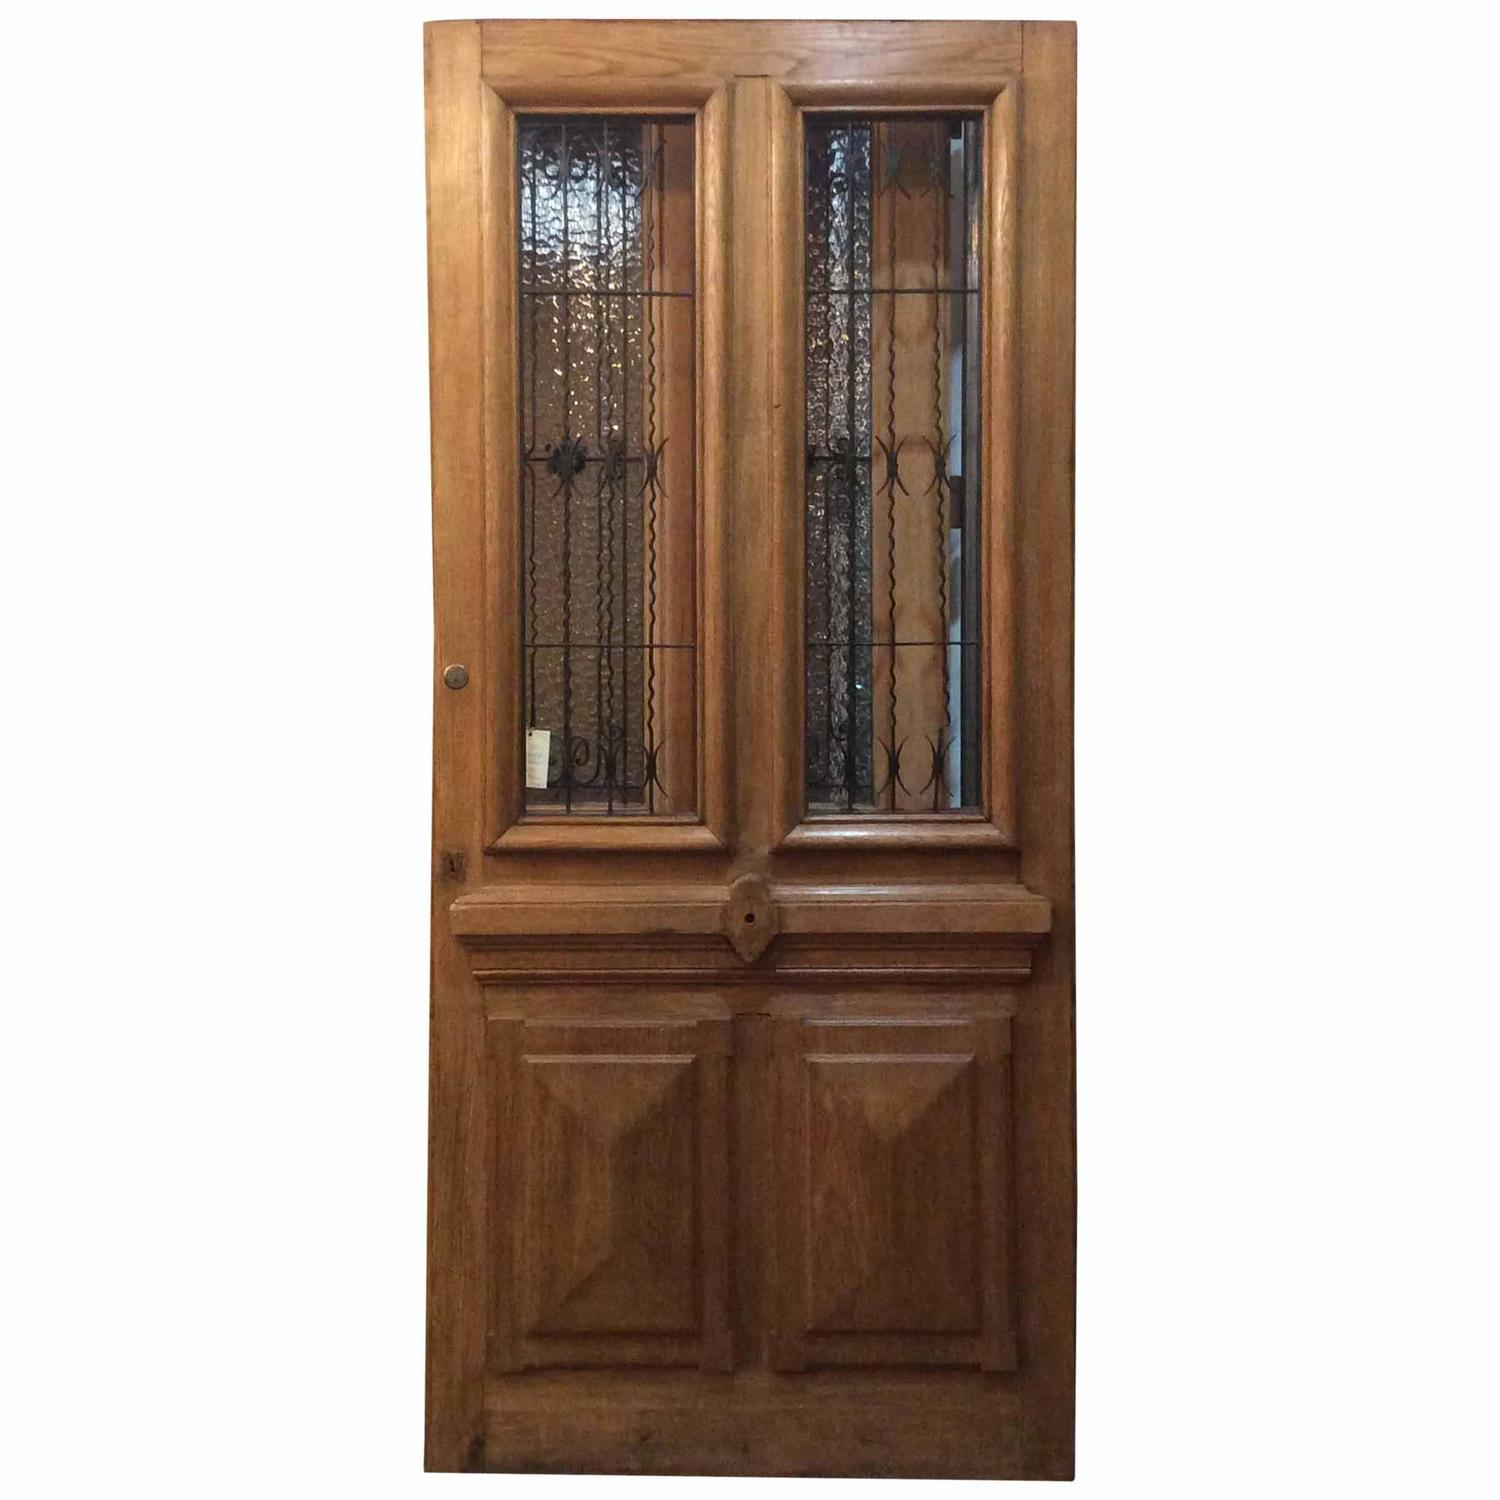 Door Single French : Single french oak door with ironwork for sale at stdibs